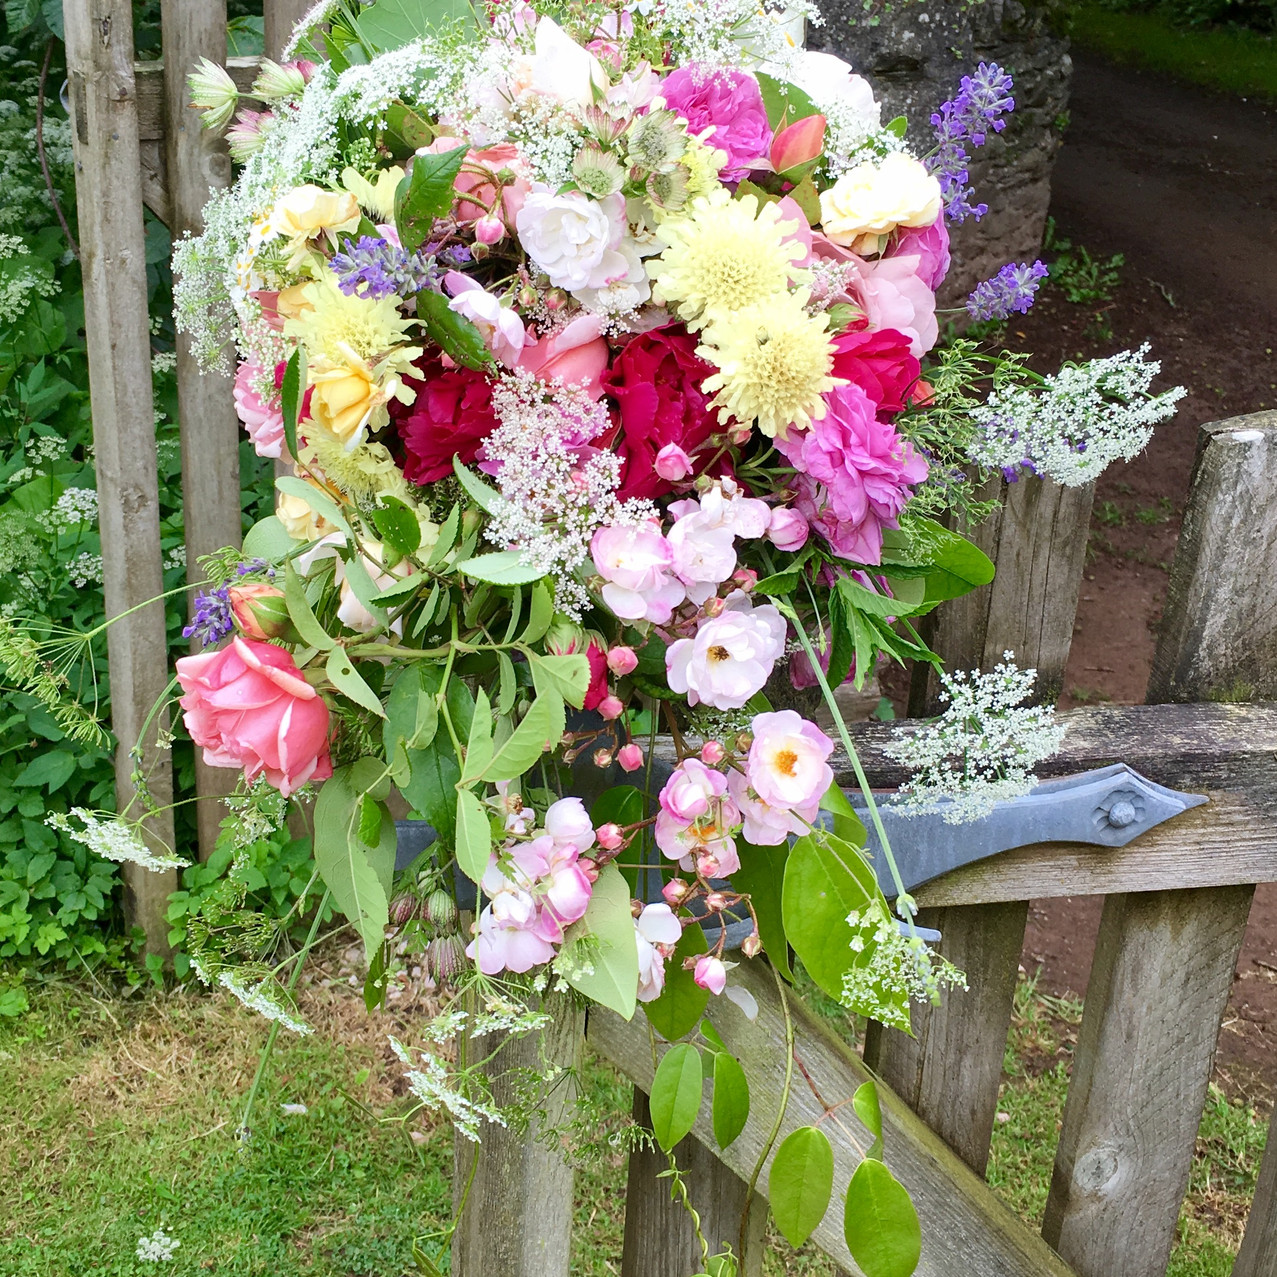 Alice's bridal bouquet for her Civil Ceremony service at Follaton House, Totnes. The bouquet is designed with flowers from her family home in South Devon, which Alice held for the service on Thursday, prior to her celebration of marriage event at Kingston House the following Saturday.